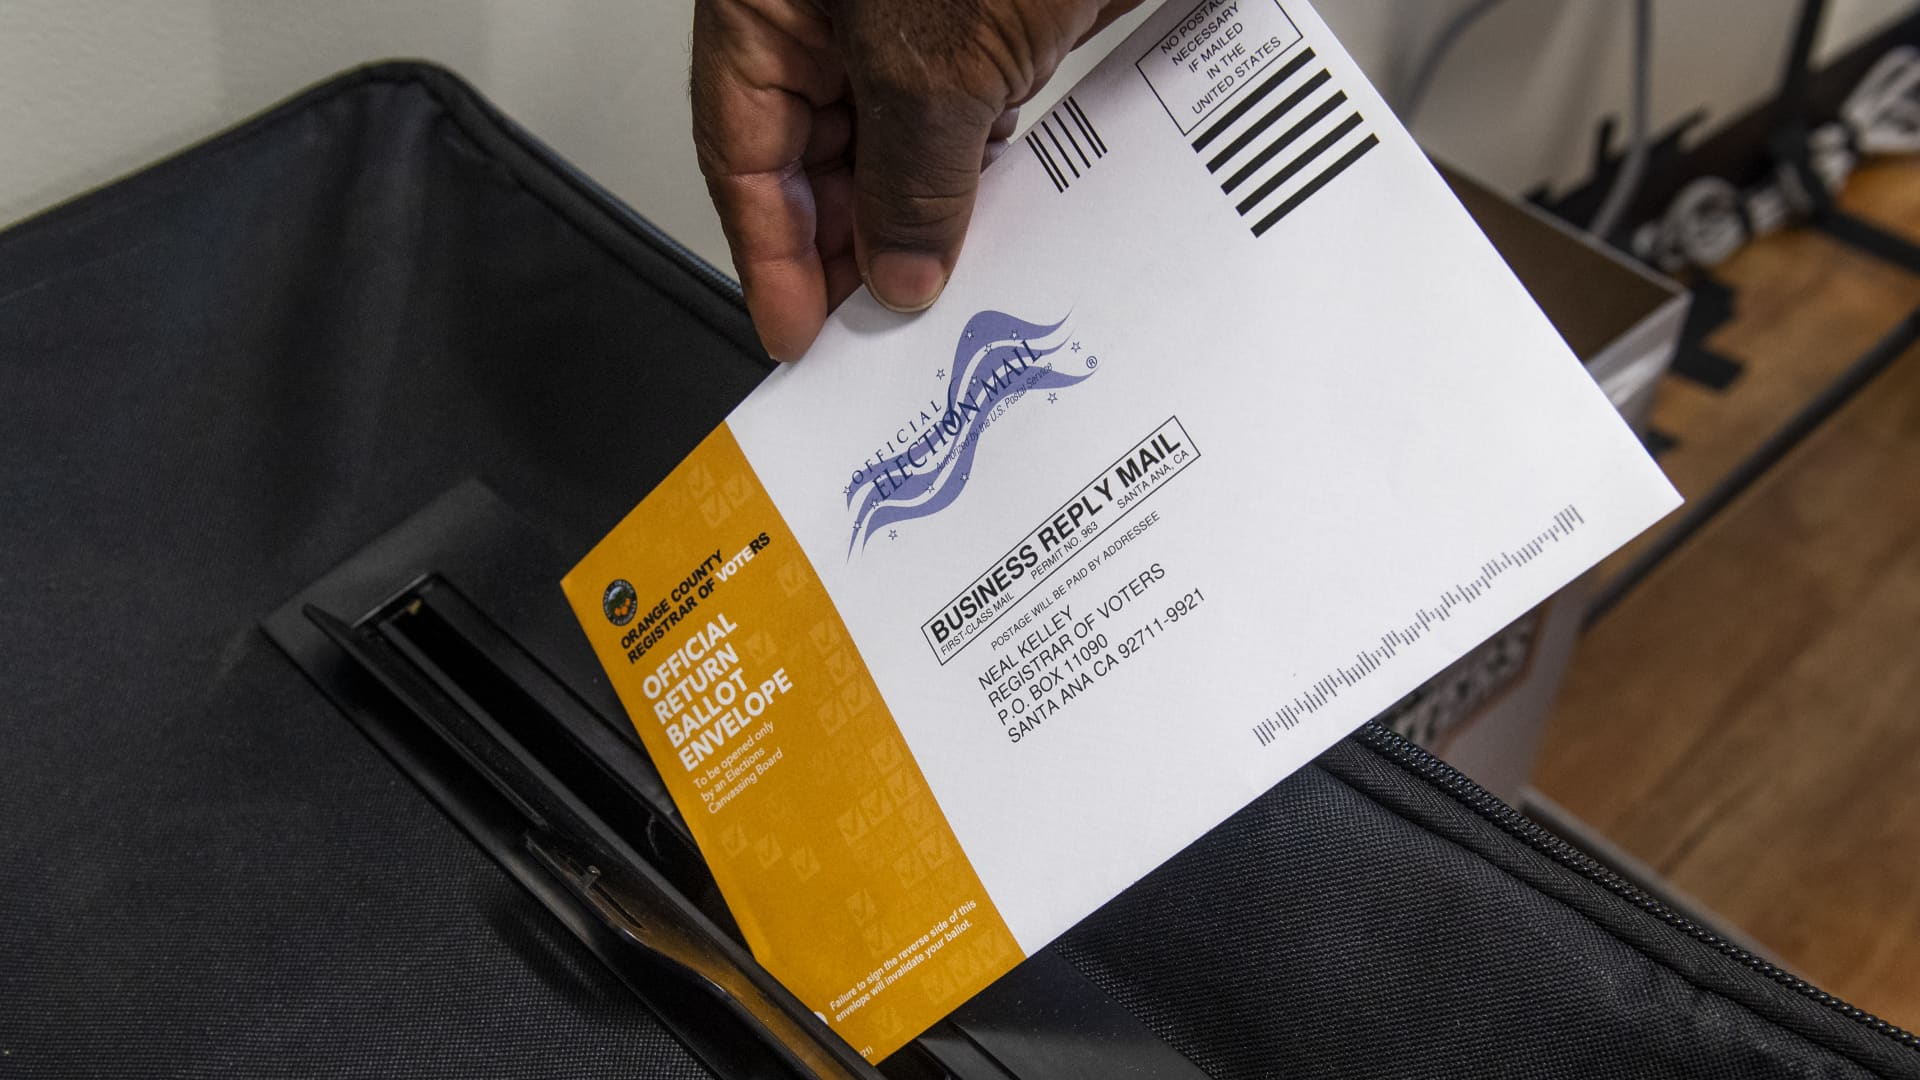 A poll worker puts a mail-in ballot in a security box in the recall election of Gov. Gavin Newsom at a center in San Clemente, CA on Tuesday, September 7, 2021.